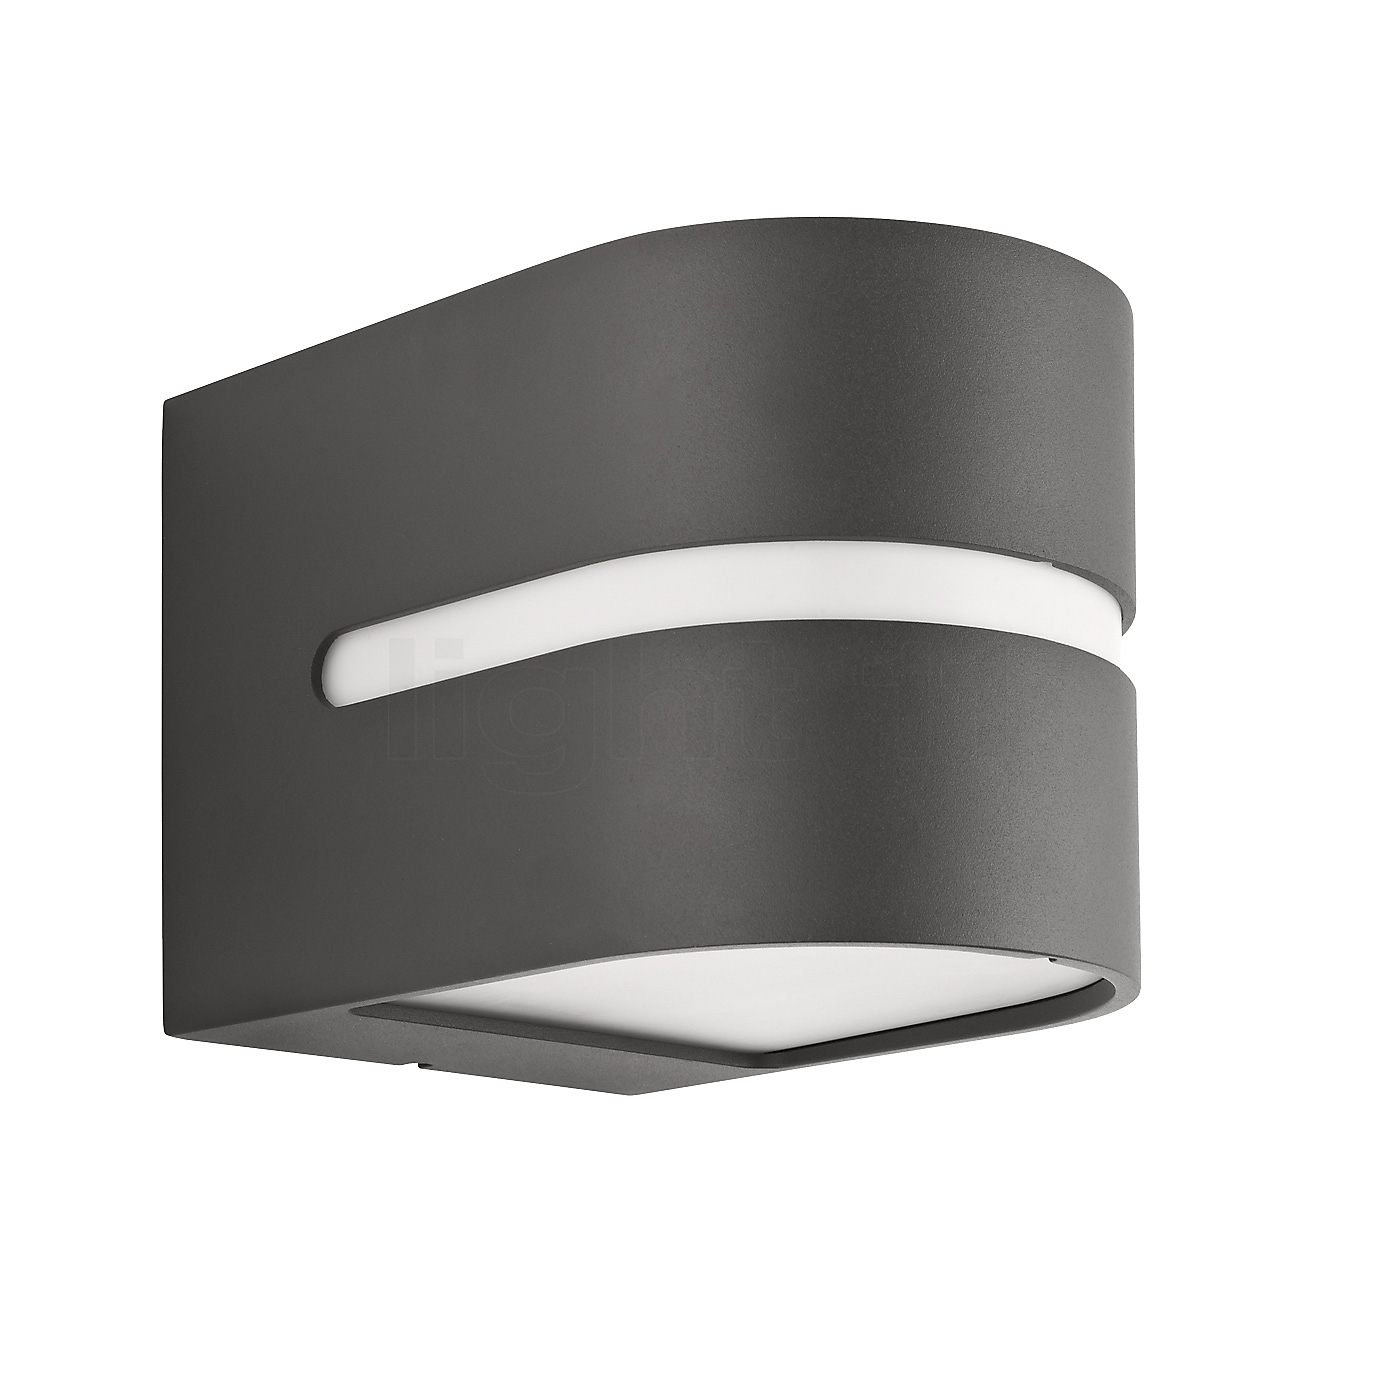 Philips Ecomoods Hazel Wall light - Wall lights - lamps & lights - light11.eu